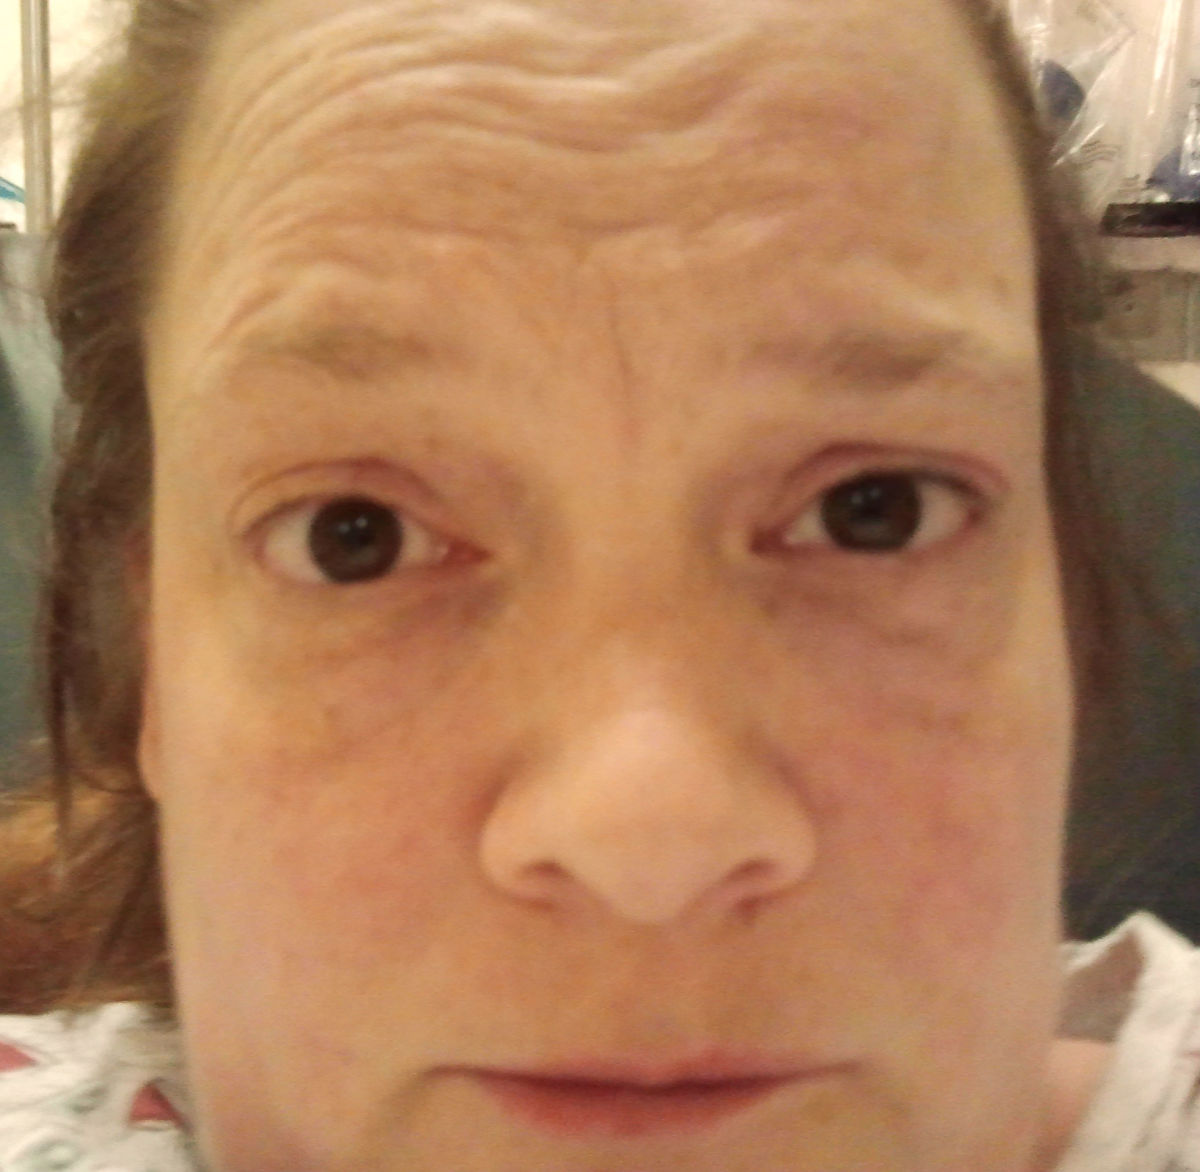 This person believes that her gallbladder is trying to kill her. Don't try this at home, folks. (Yes, this was after the morphine and no, I do not know how one eye got higher than the other.)